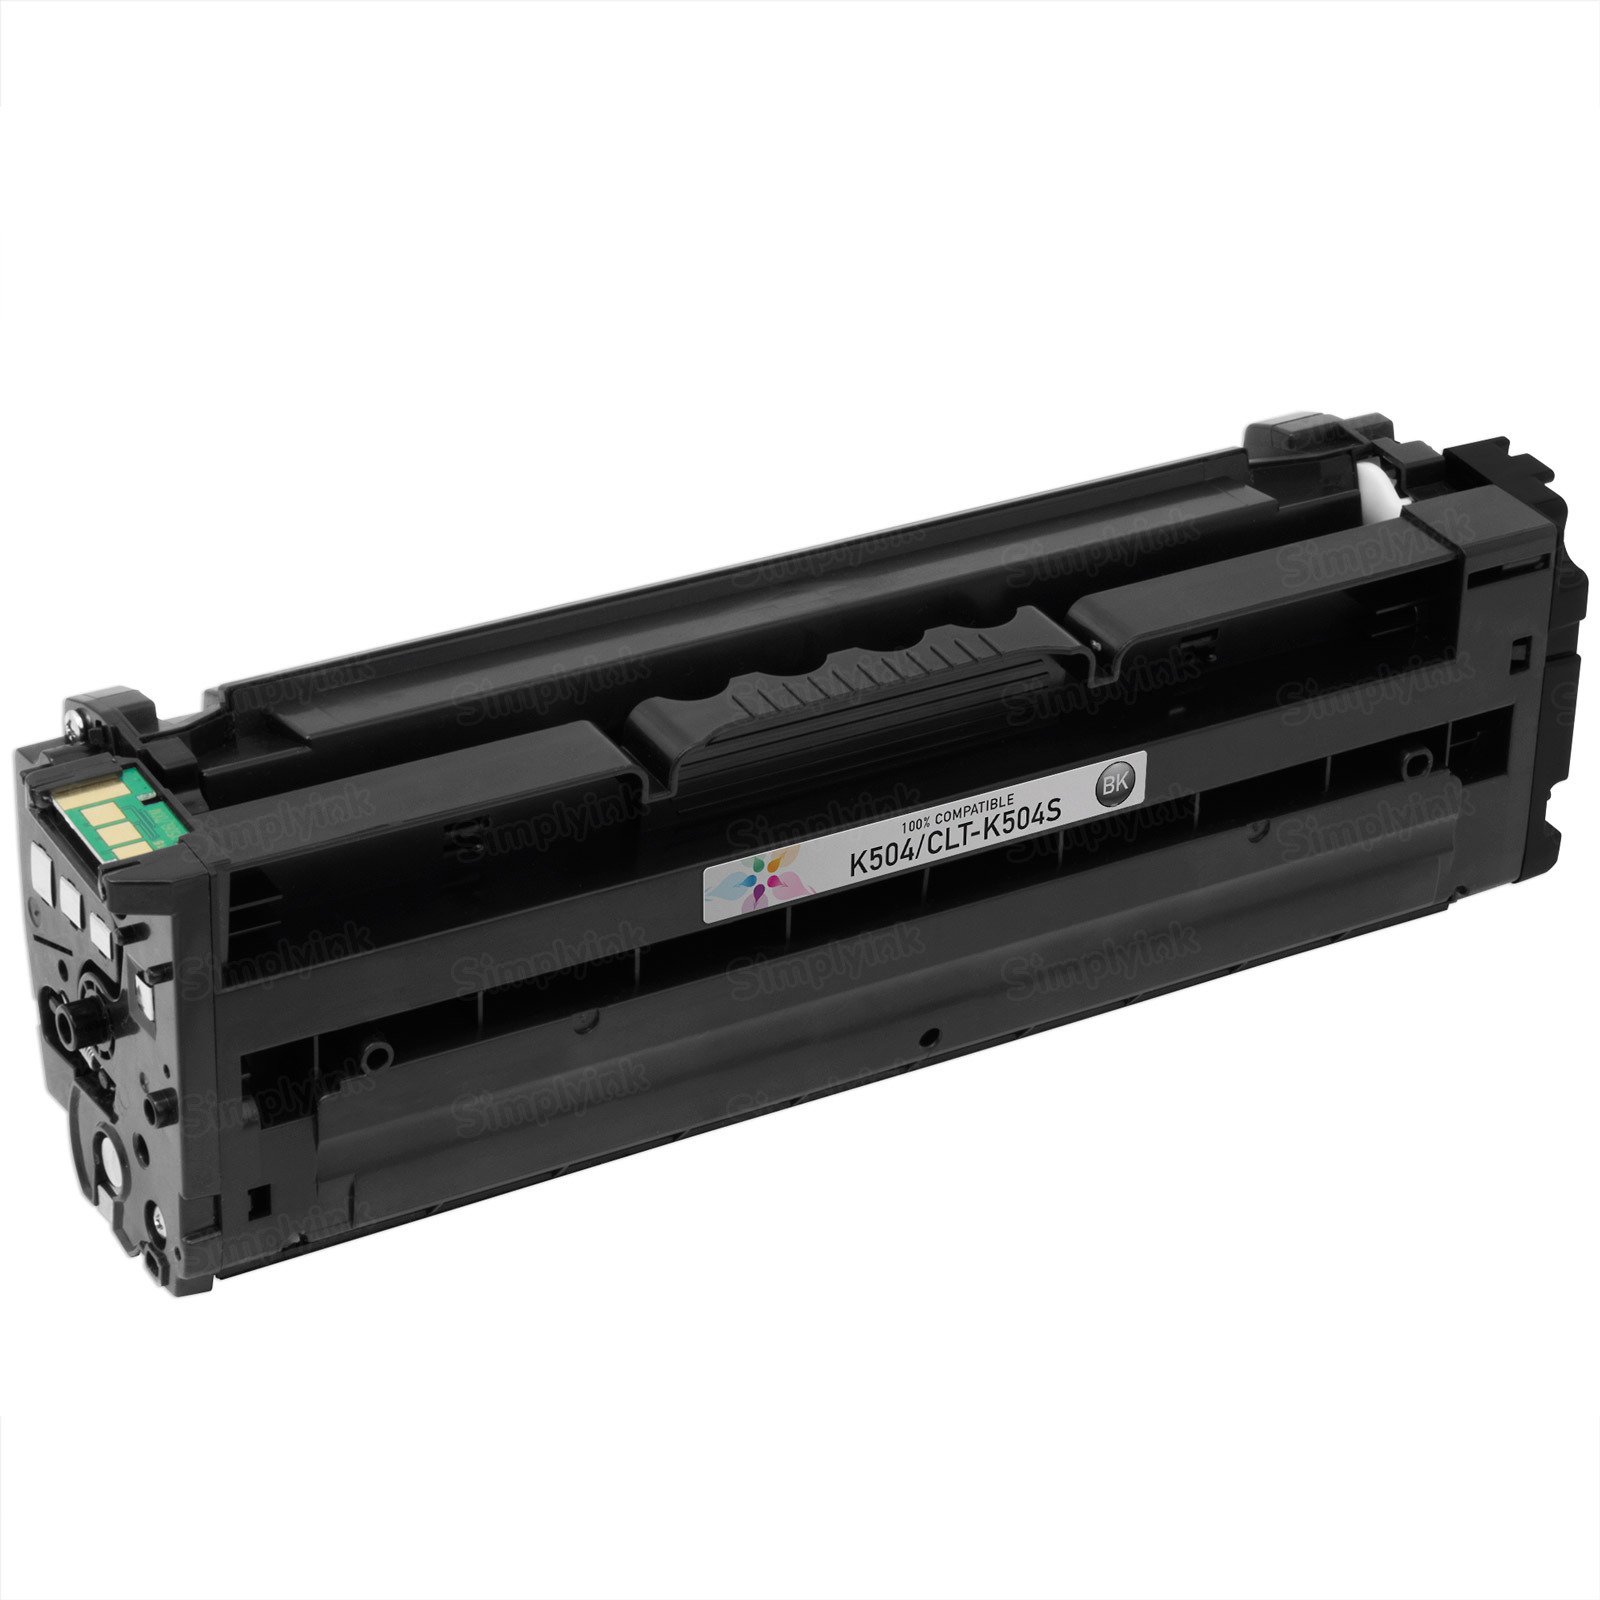 Compatible Black Toner for Samsung K504